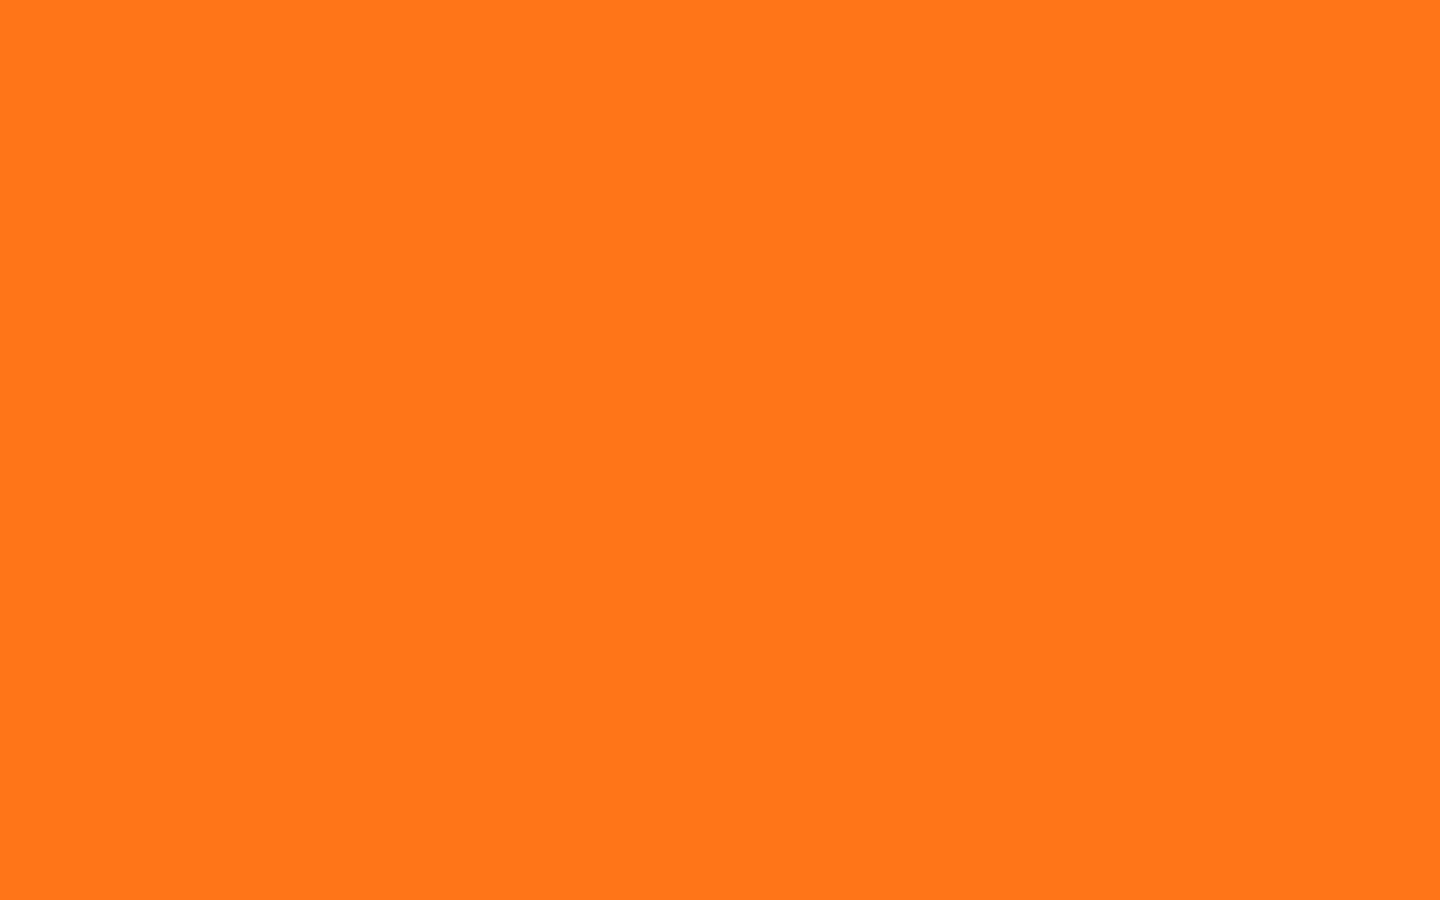 1440x900 Pumpkin Solid Color Background